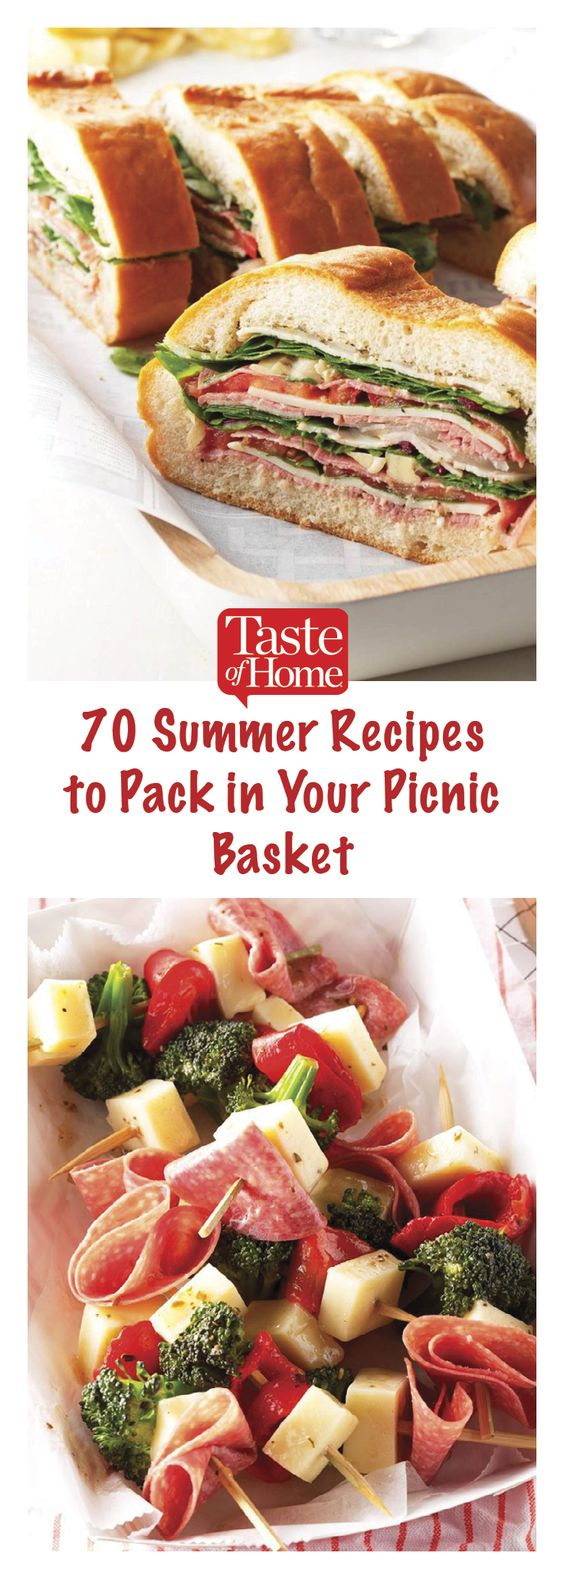 75 Summer Recipes to Pack in Your Picnic Basket